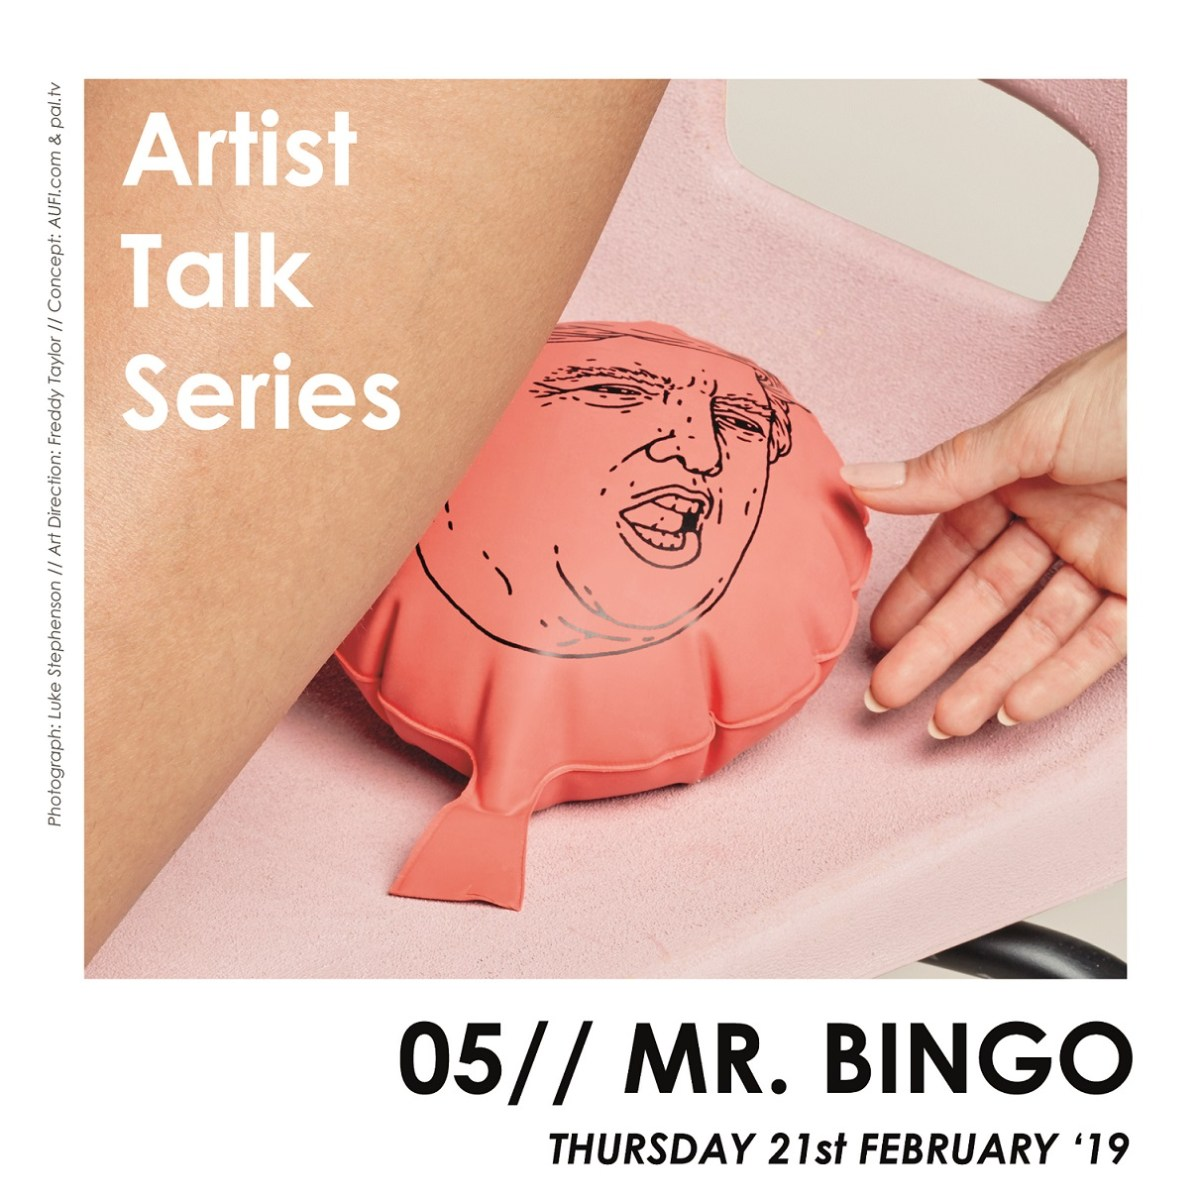 REVIEW: Mr. Bingo's Artist Talk @ The Boileroom, 21/02/2019